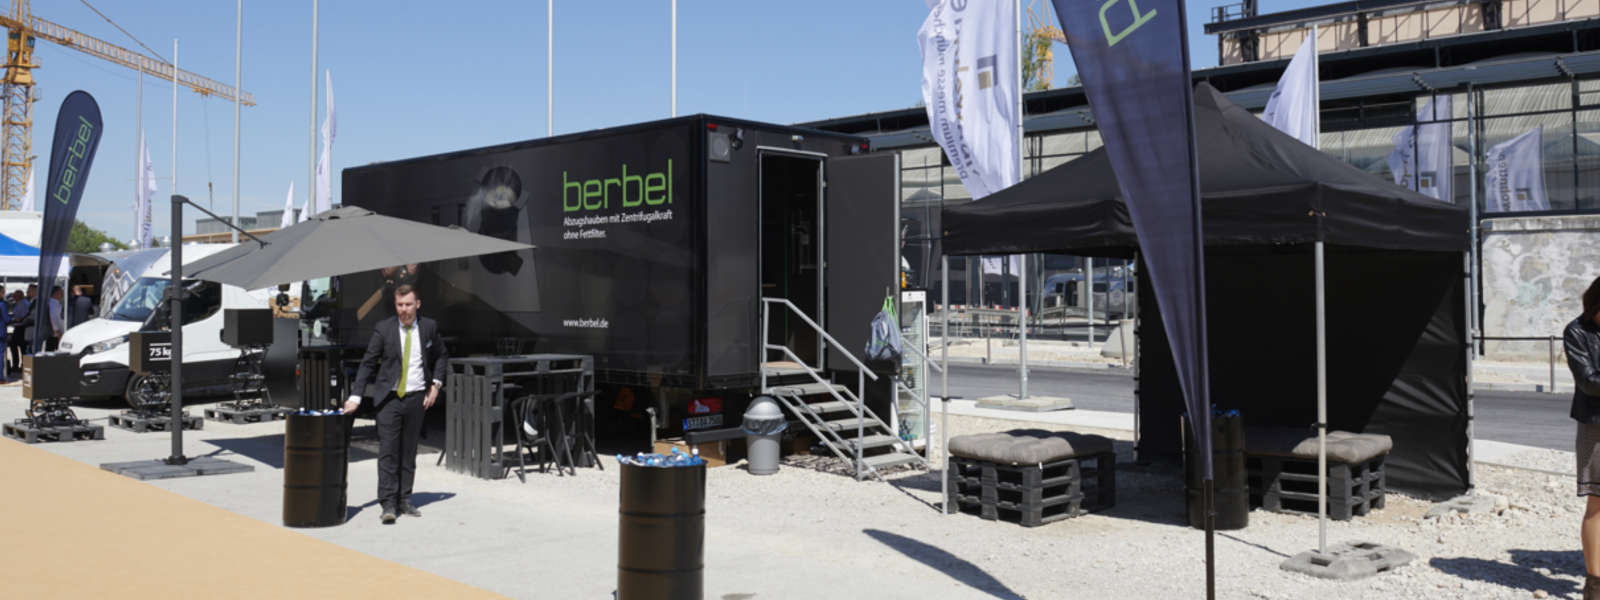 Here You Will Find The Berbel Photo Galleries